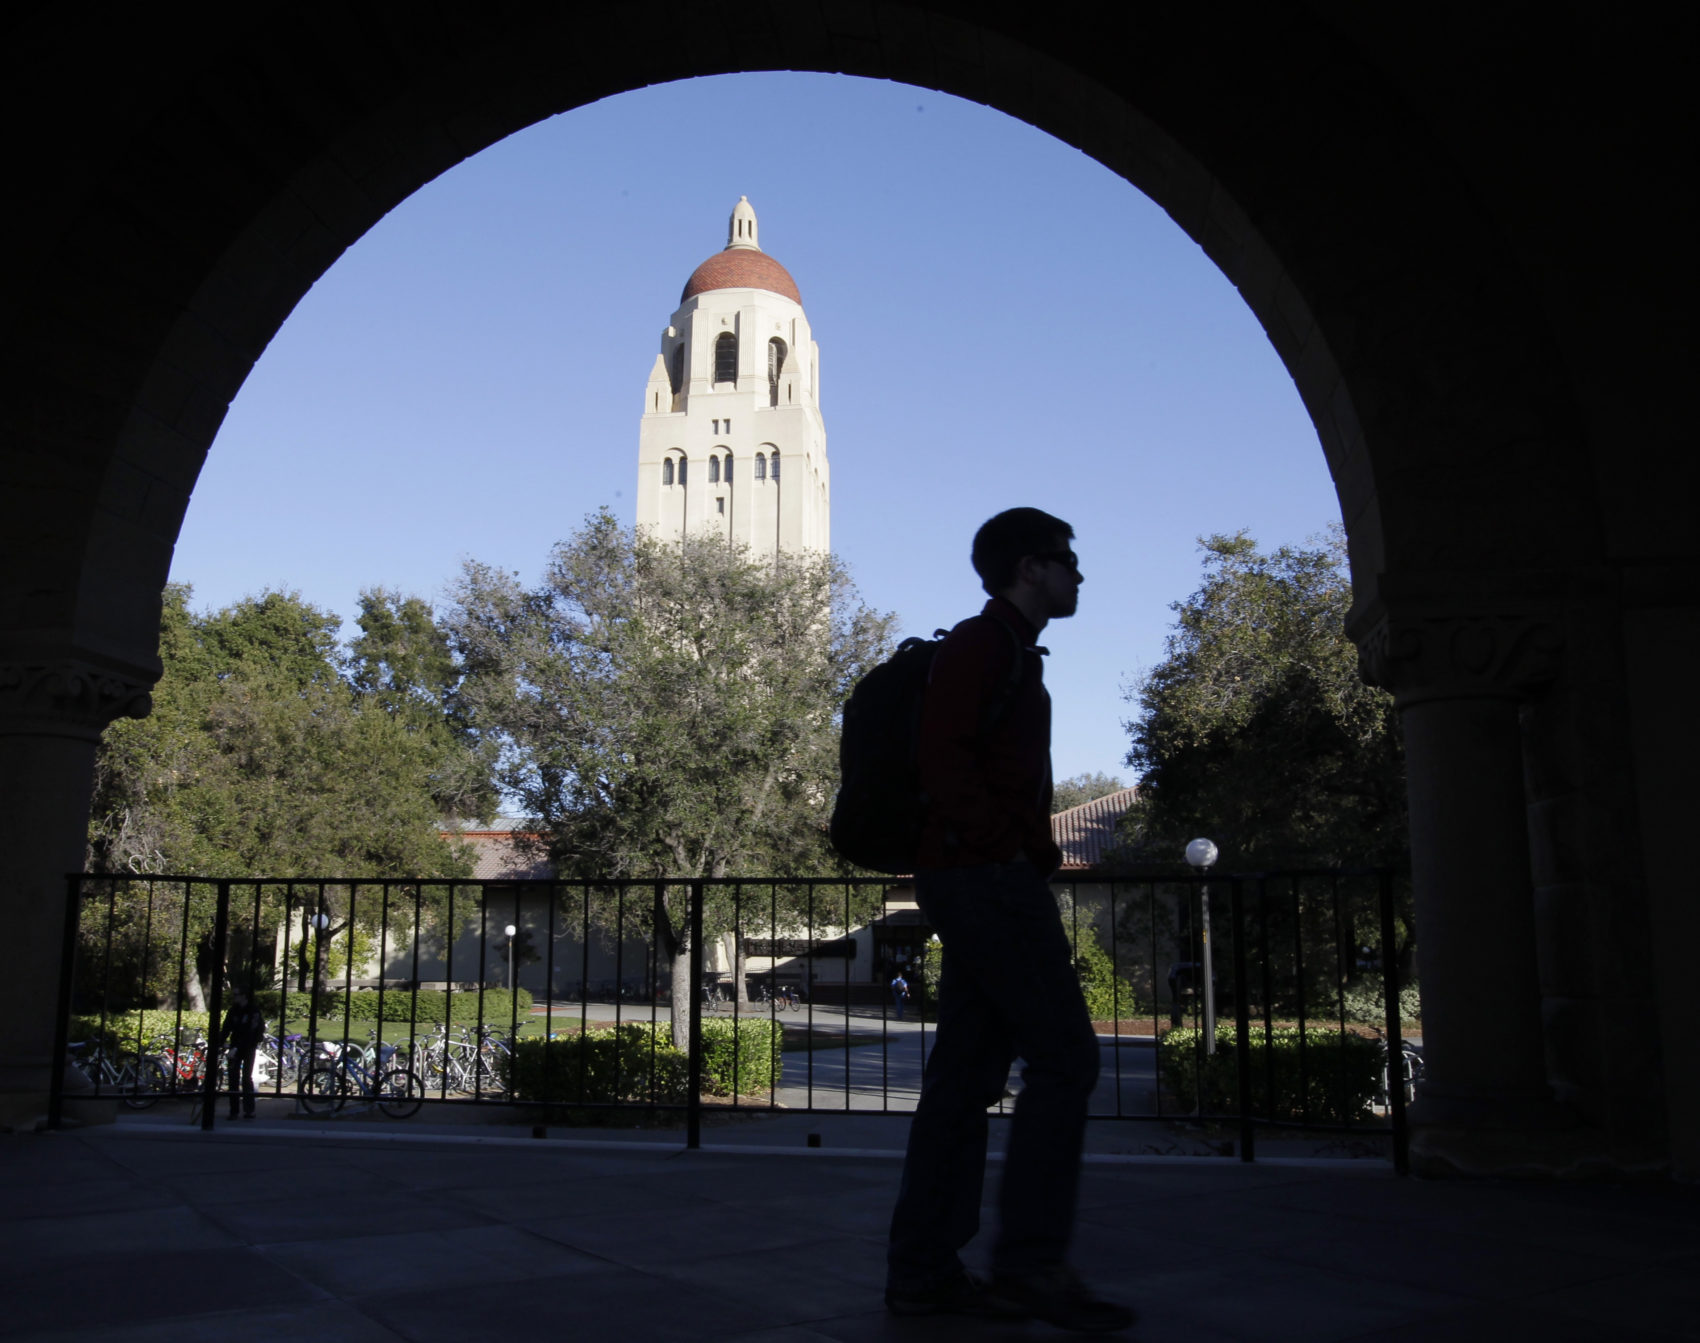 A Stanford University student walks in front of Hoover Tower on the Palo Alto, Calif. campus. Authorities have charged college coaches and others in a sweeping admissions bribery case. The charges were unsealed against coaches at Stanford, Wake Forest, Georgetown, the University of Southern California and the University of Southern California and University of California, Los Angeles.  (Paul Sakuma/AP)